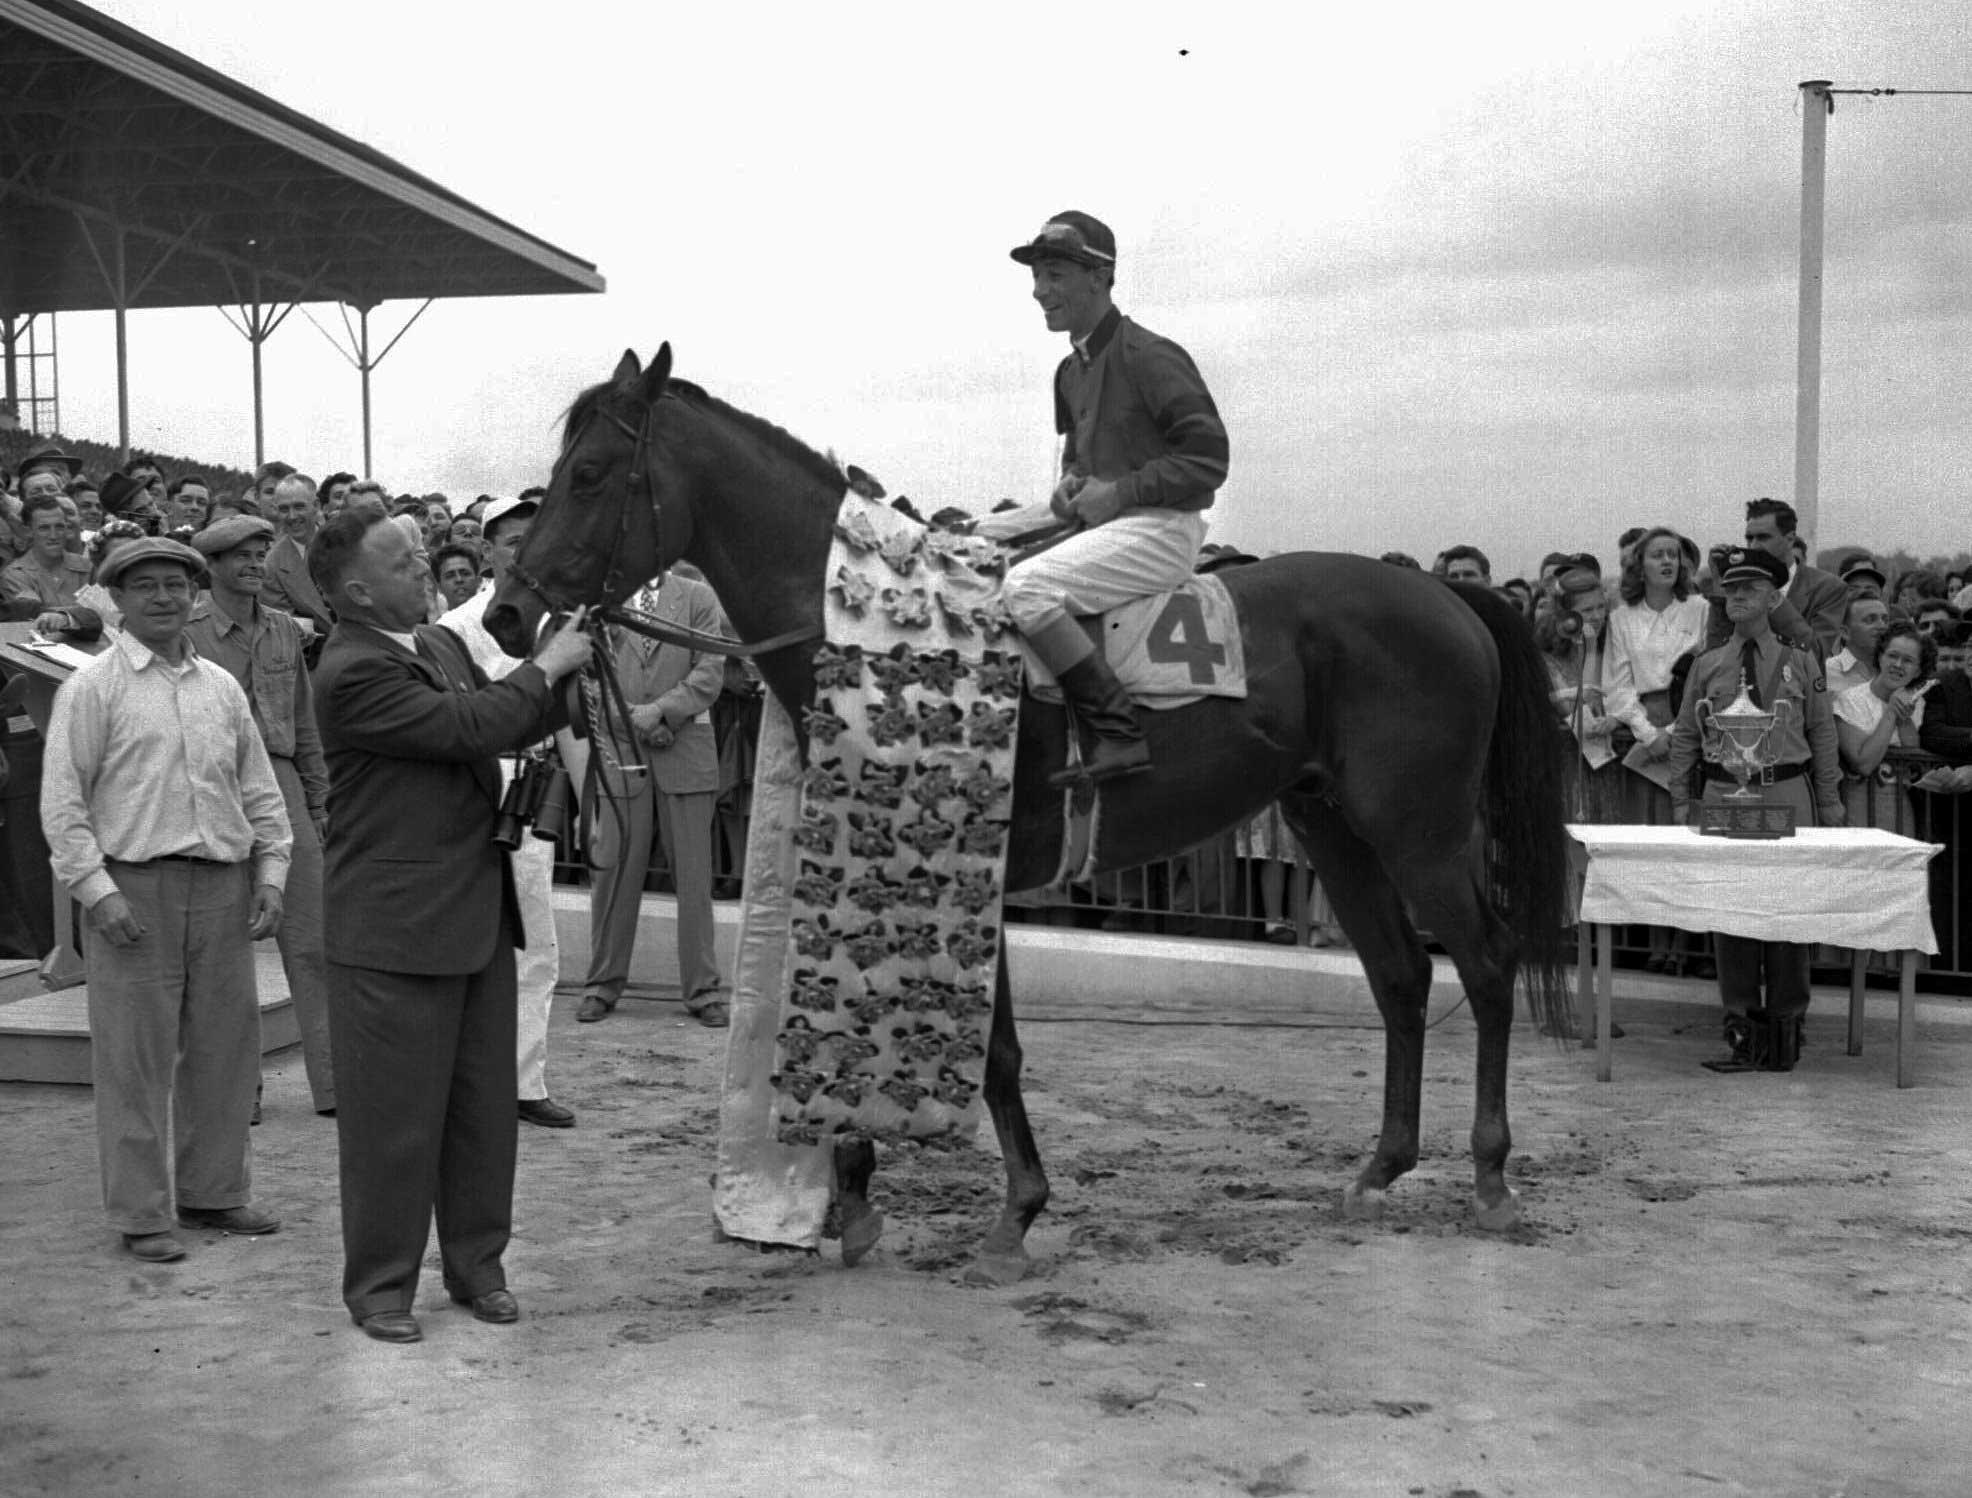 1948: Citation with jockey Eddie Arcaro